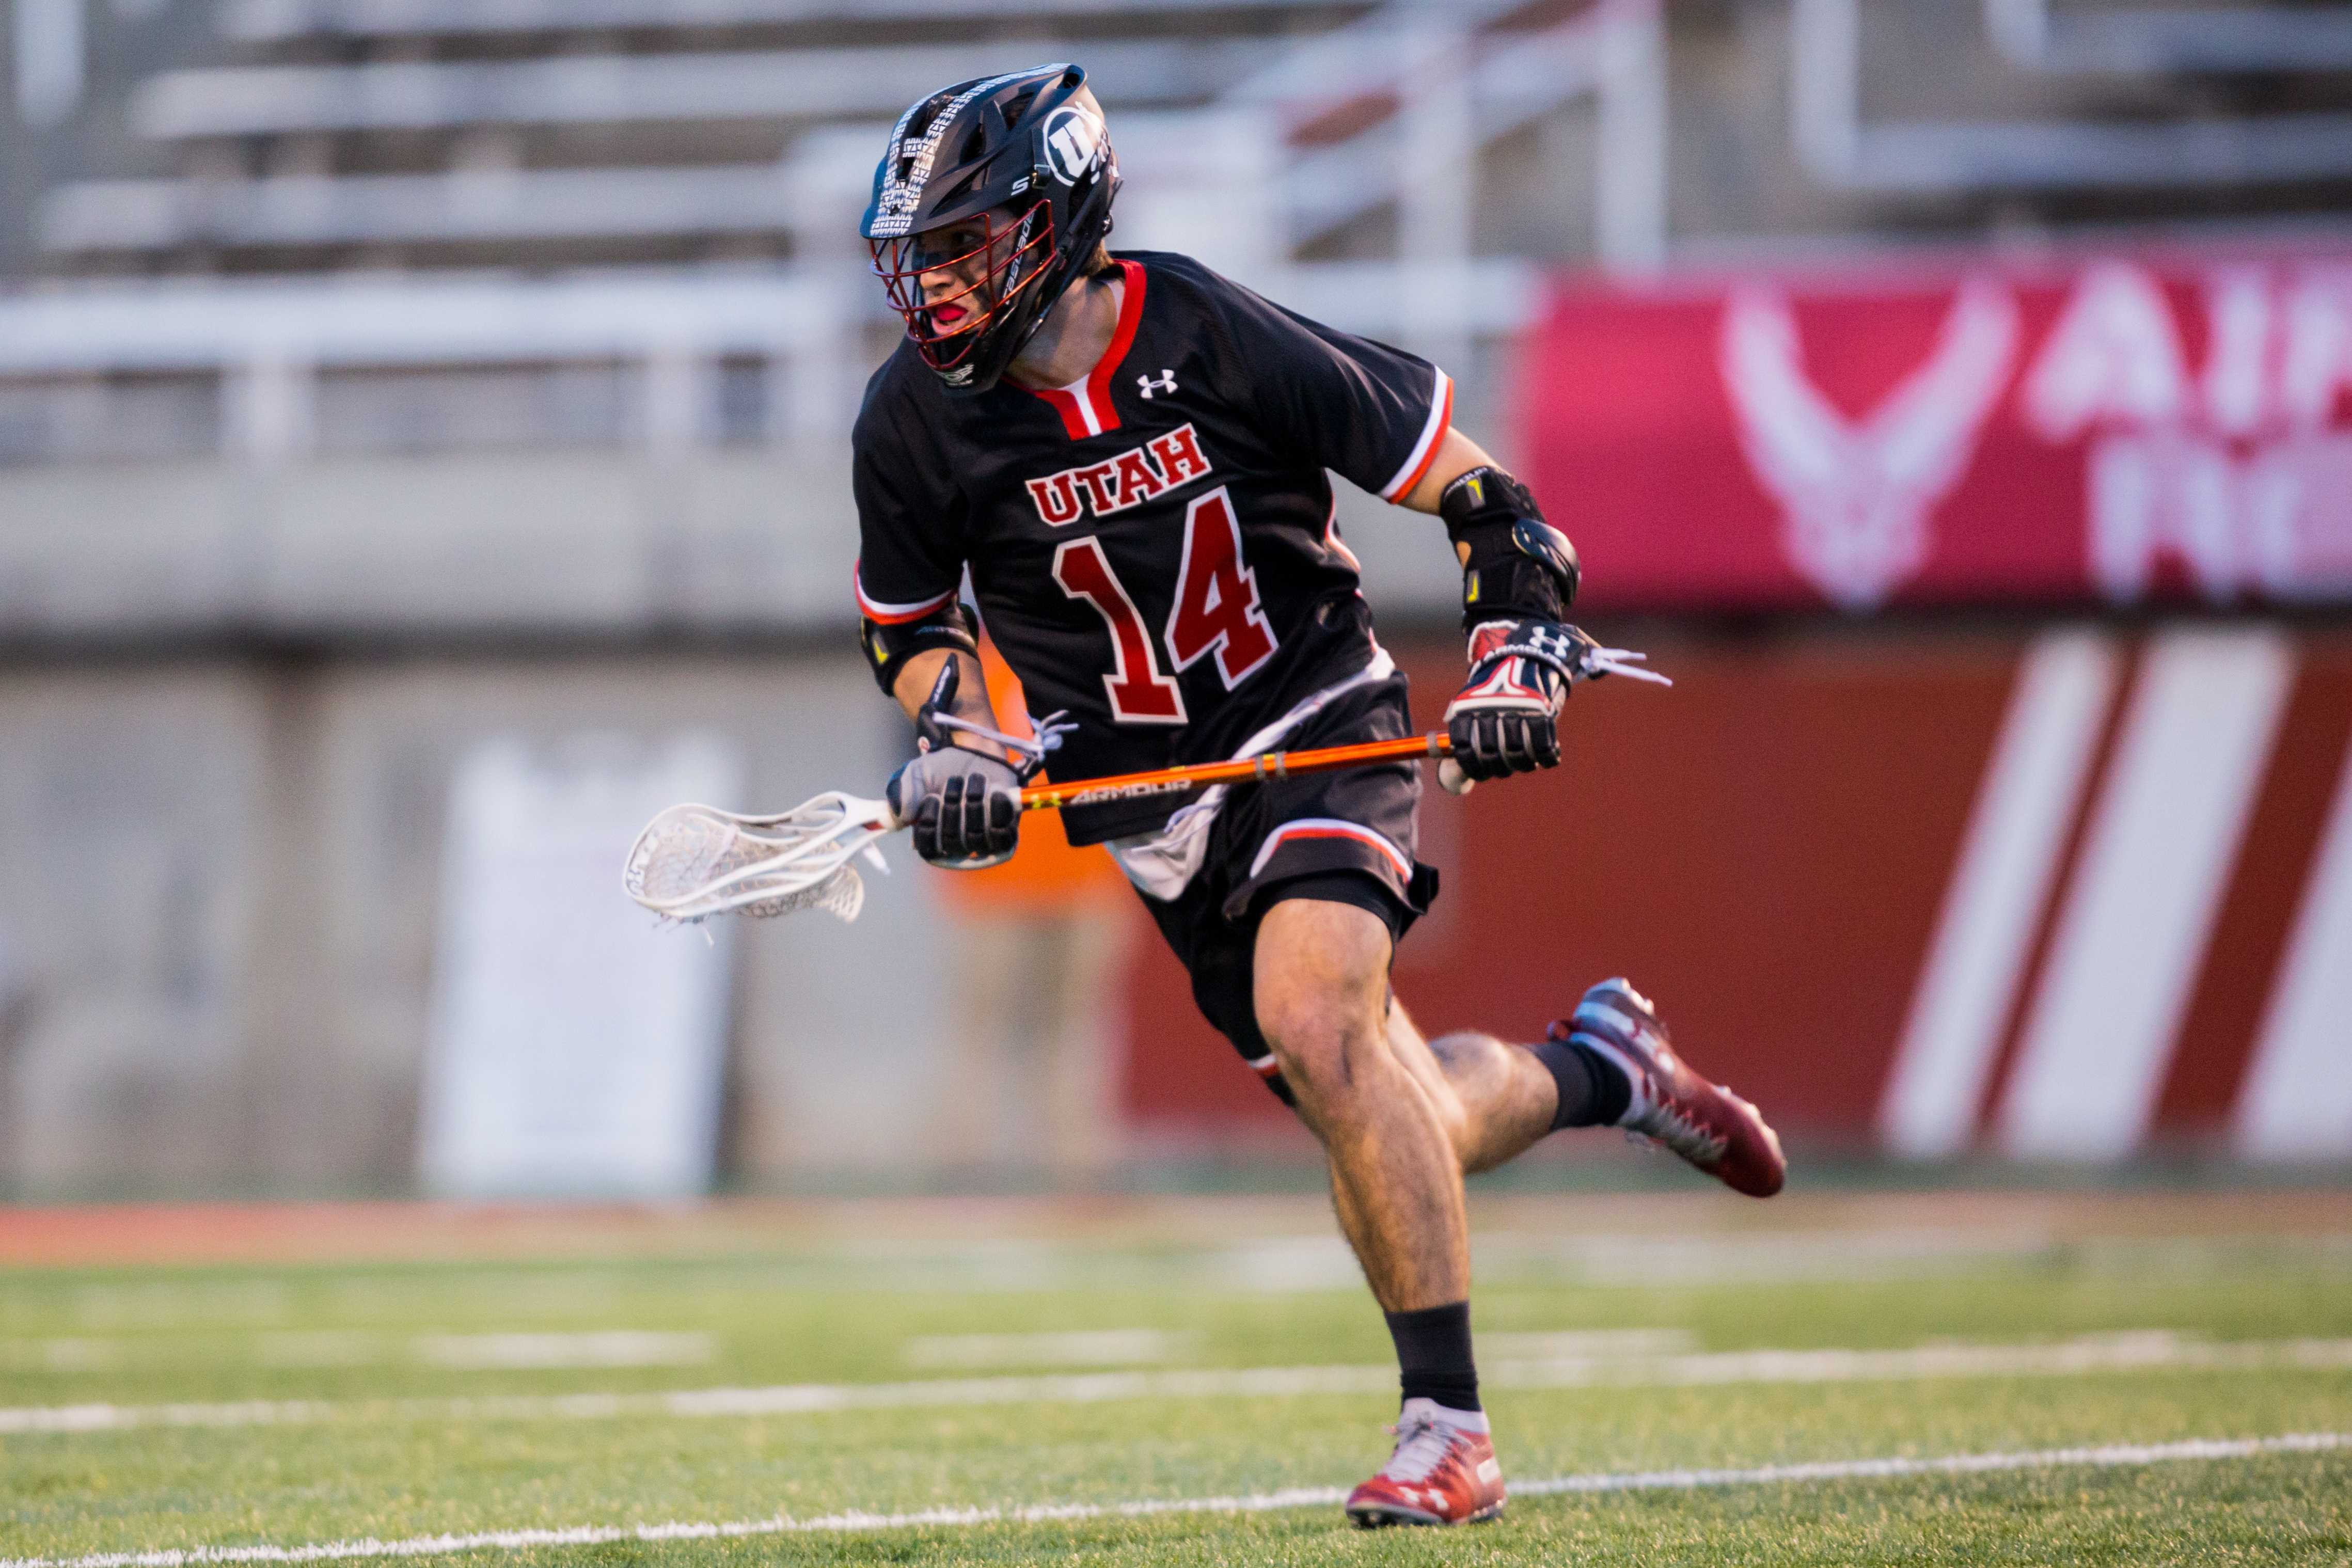 University of Utah freshman midfielder Liam Cavanaugh-Fernandez (14) looked to pass to a teammate in an NCAA Men's Lacrosse game vs. Vermont at Rice-Eccles Stadium in Salt Lake City, UT on Friday February 01, 2019.  (Photo by Curtis Lin | Daily Utah Chronicle)